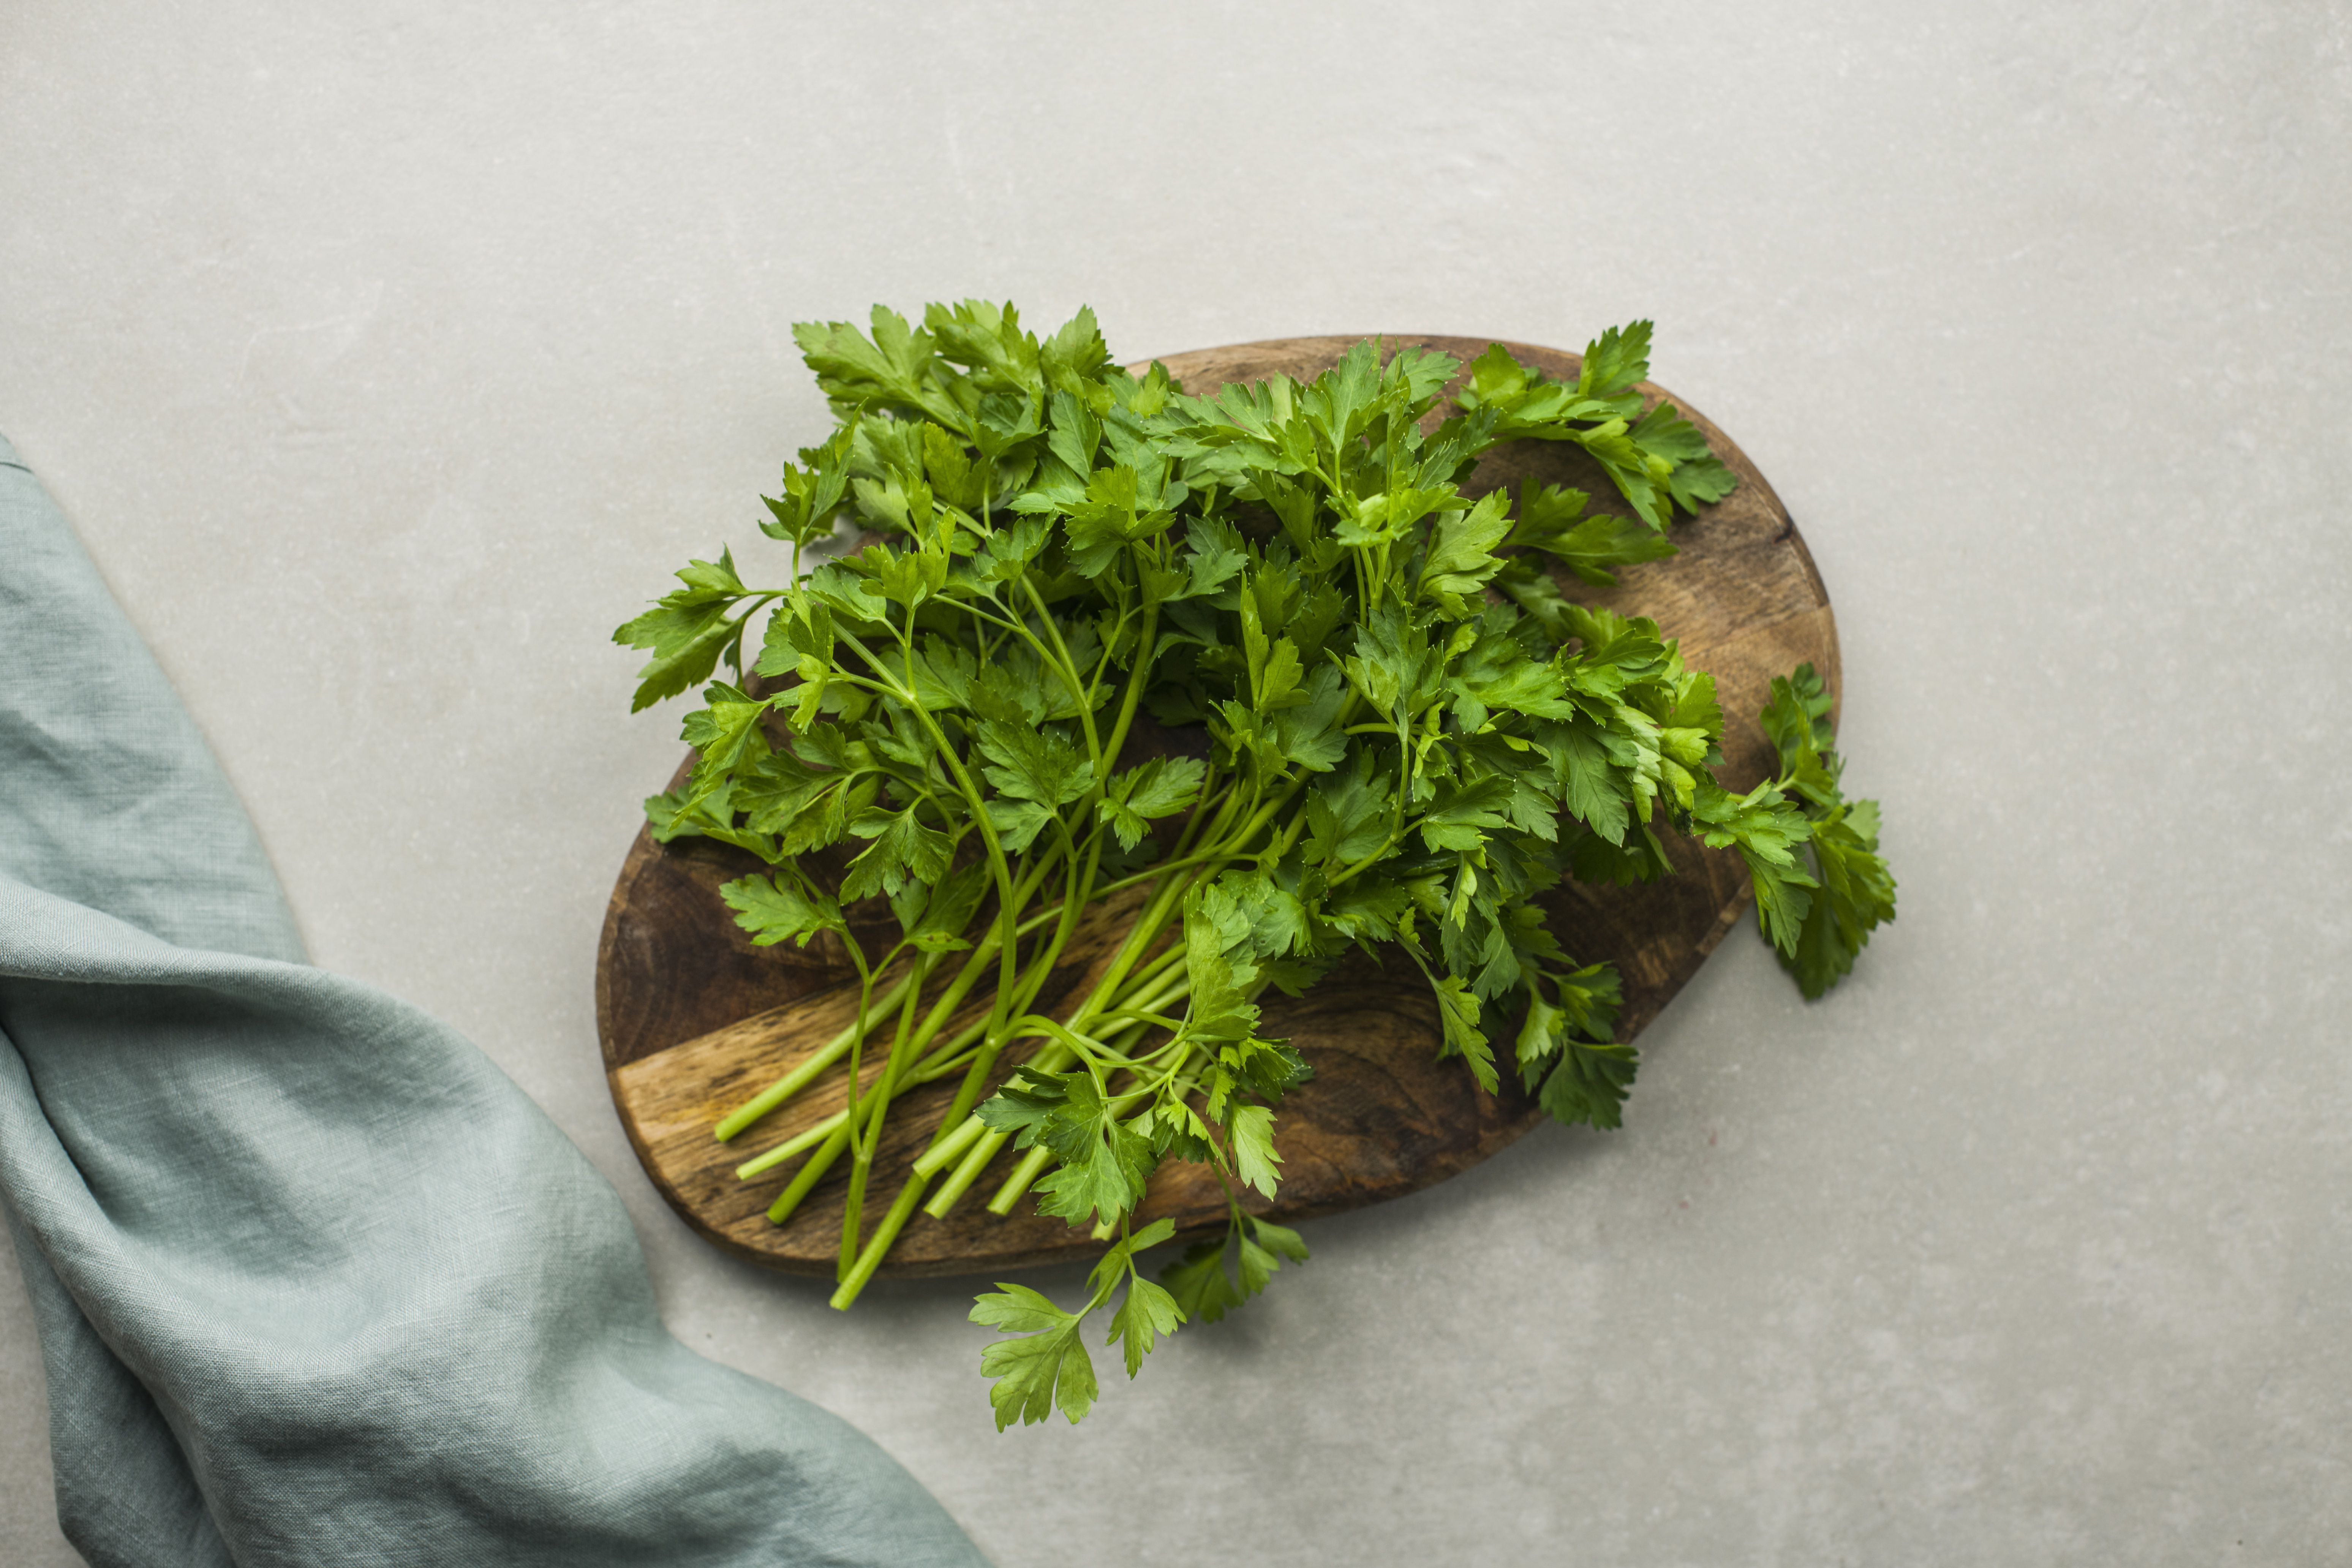 Wash and dry parsley